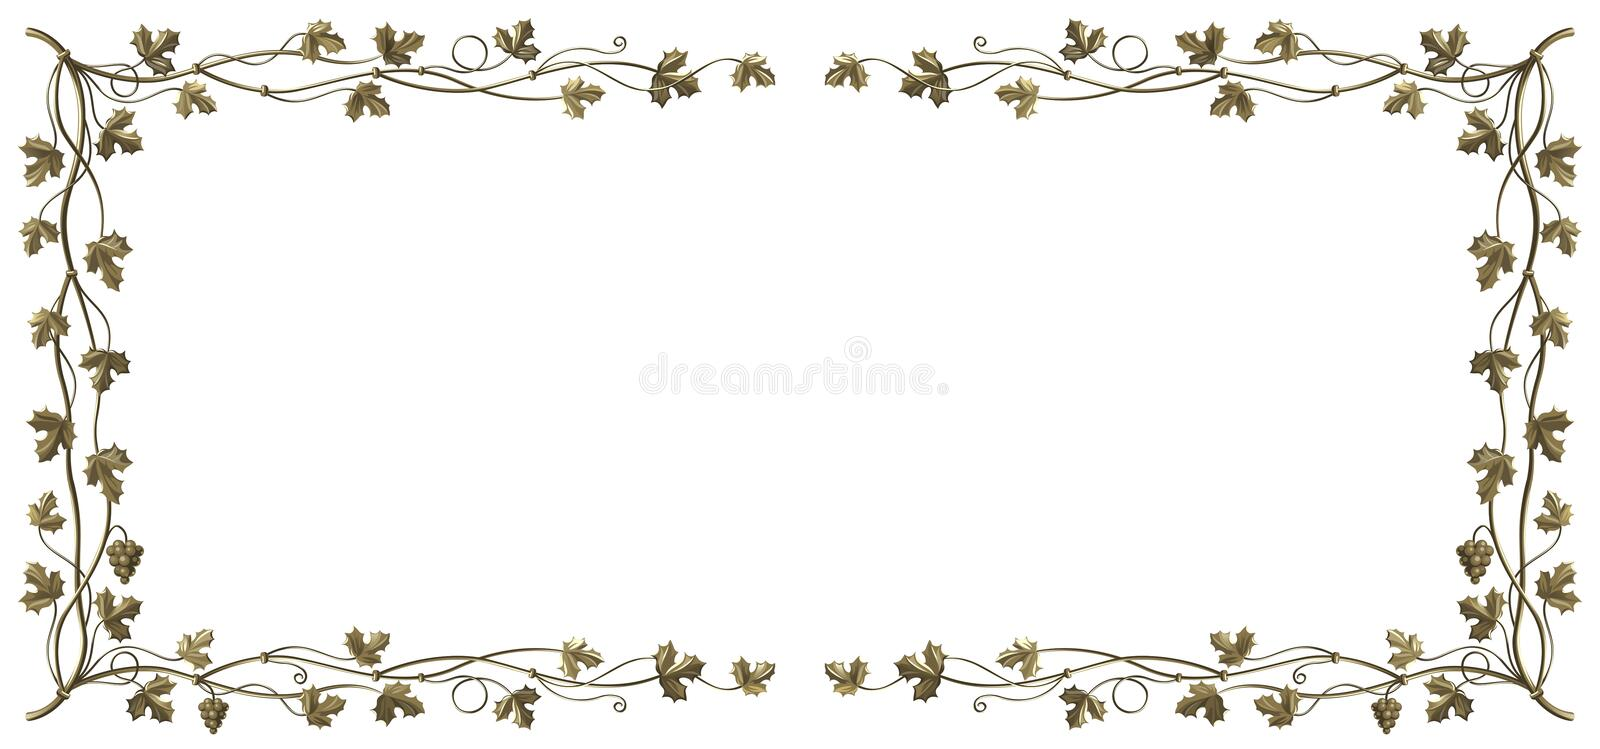 Download Grapevine frame stock vector. Image of metal, organic - 17464162